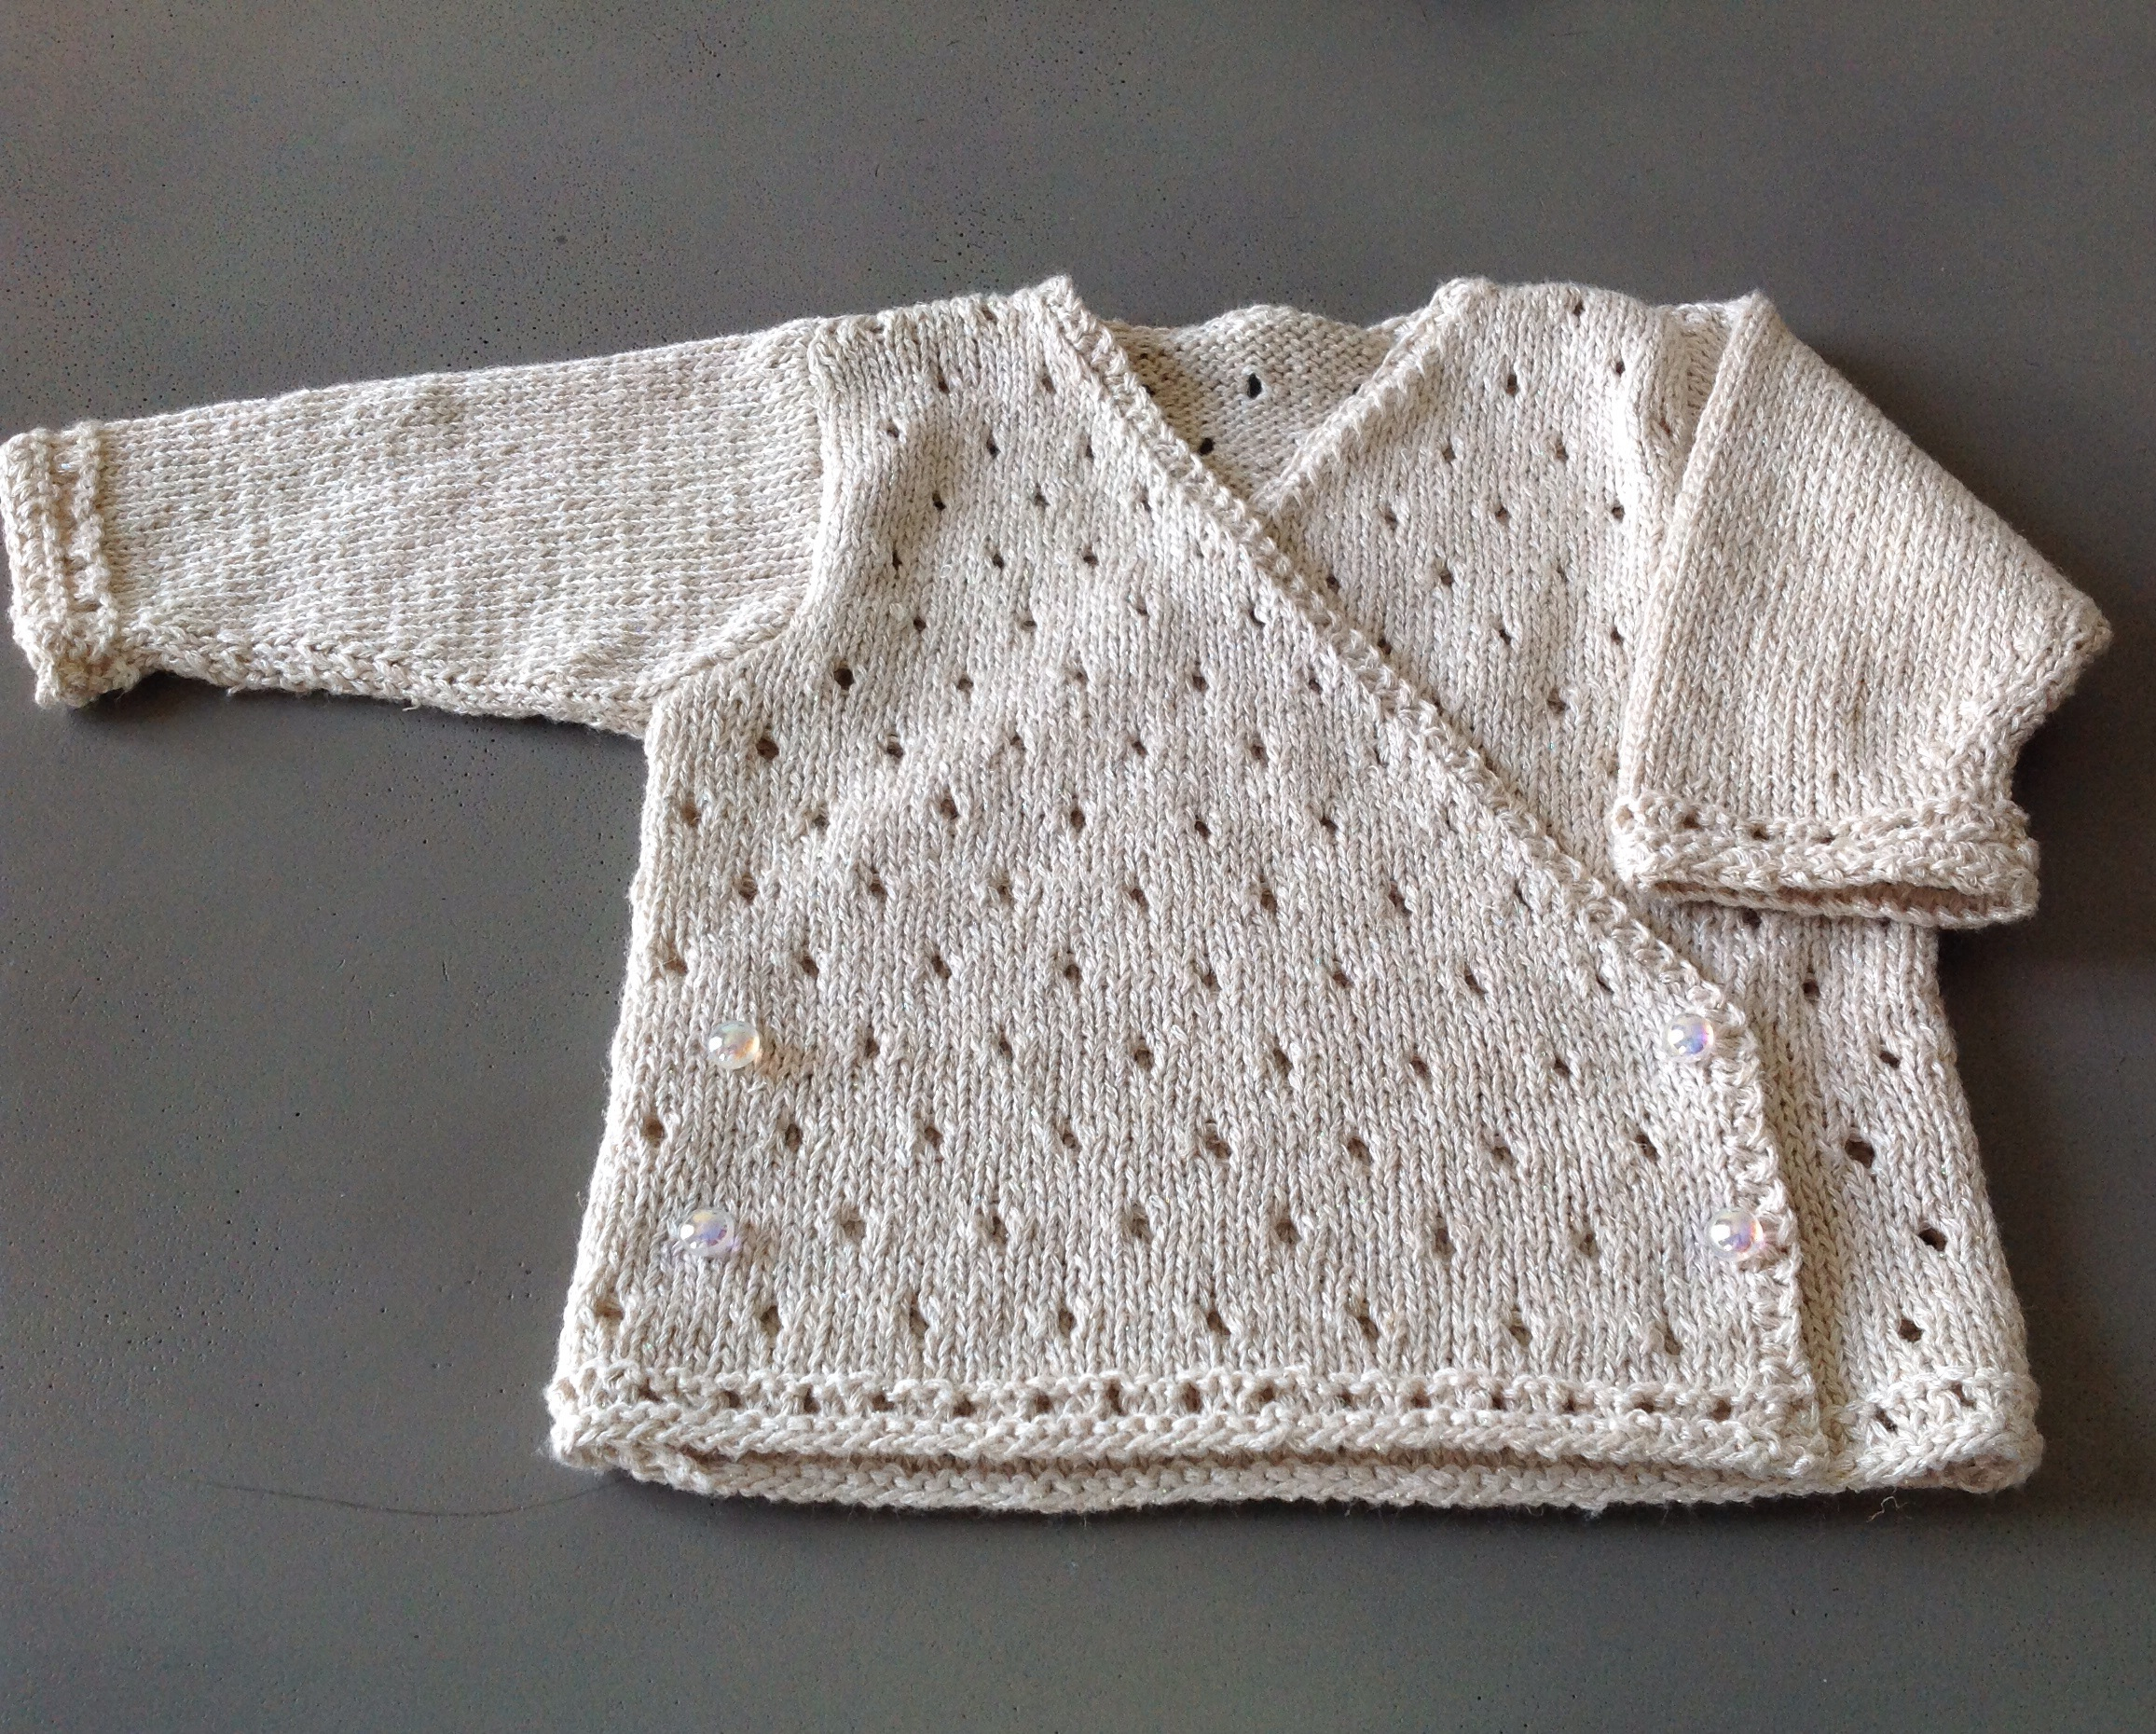 Tricot bebe edition marie claire